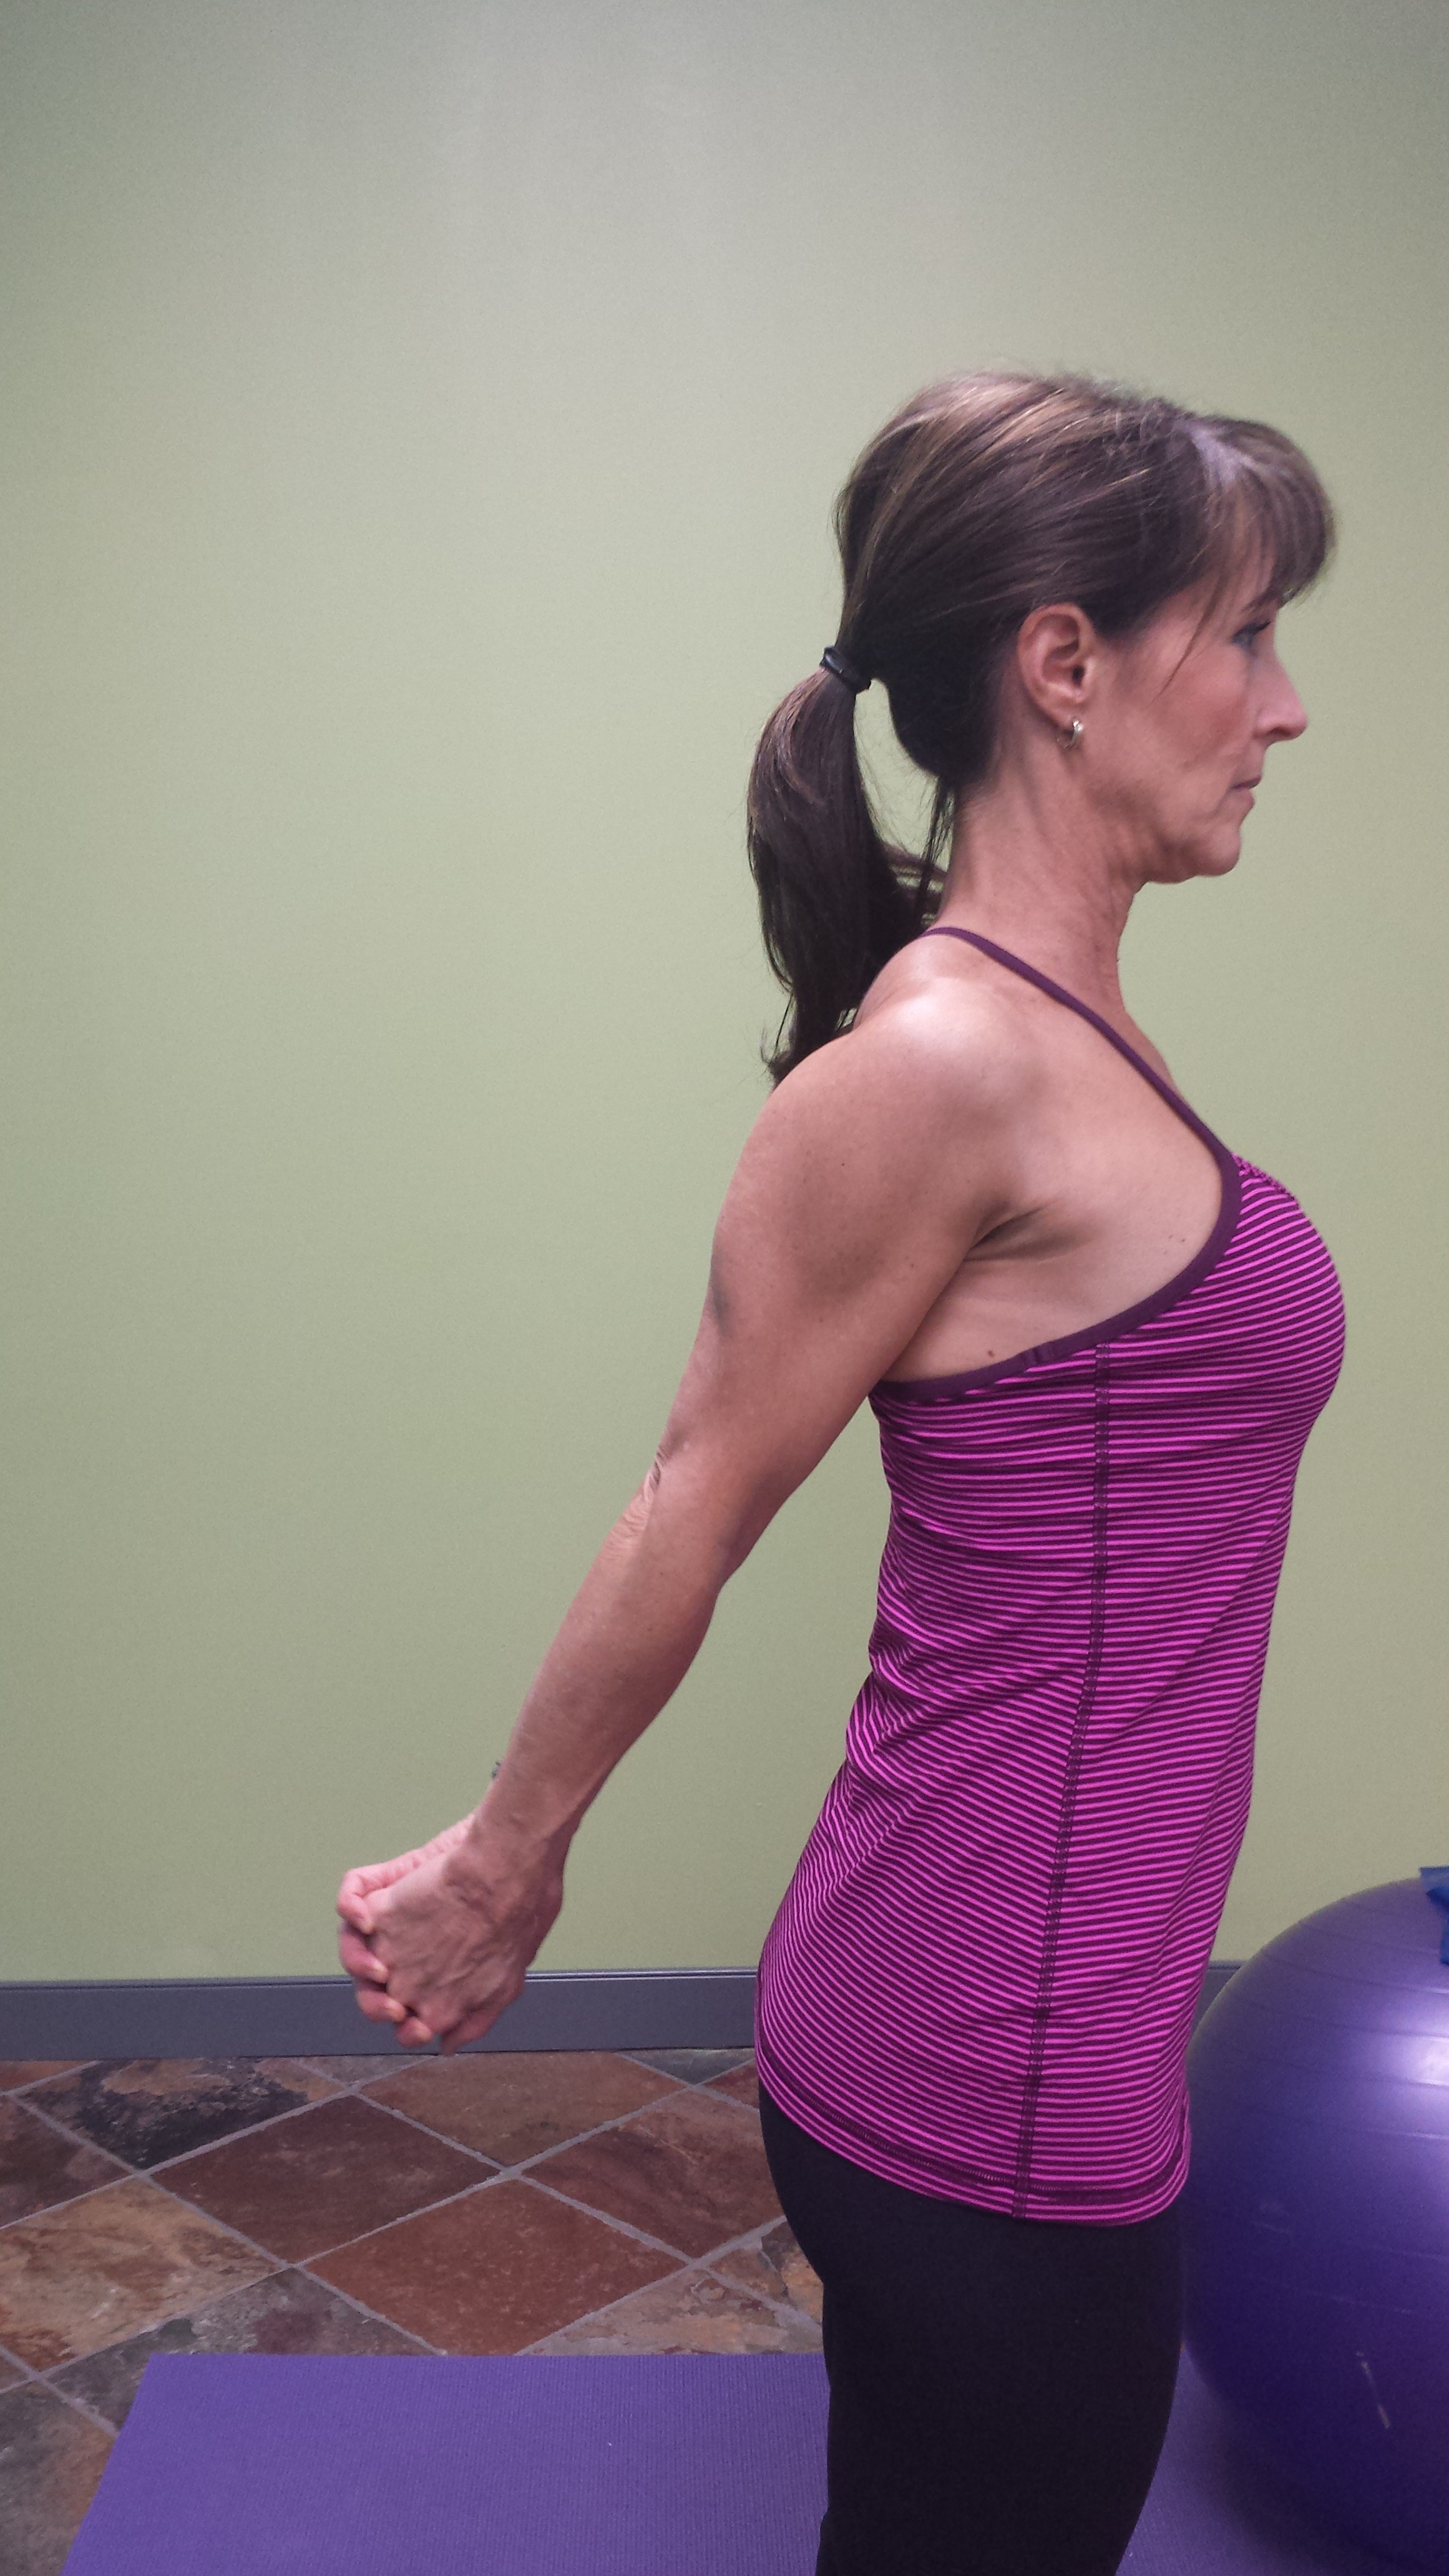 Denise demonstrating a shoulder range of motion technique, arms straight, hands clasped behind her back. This is the view from the side.